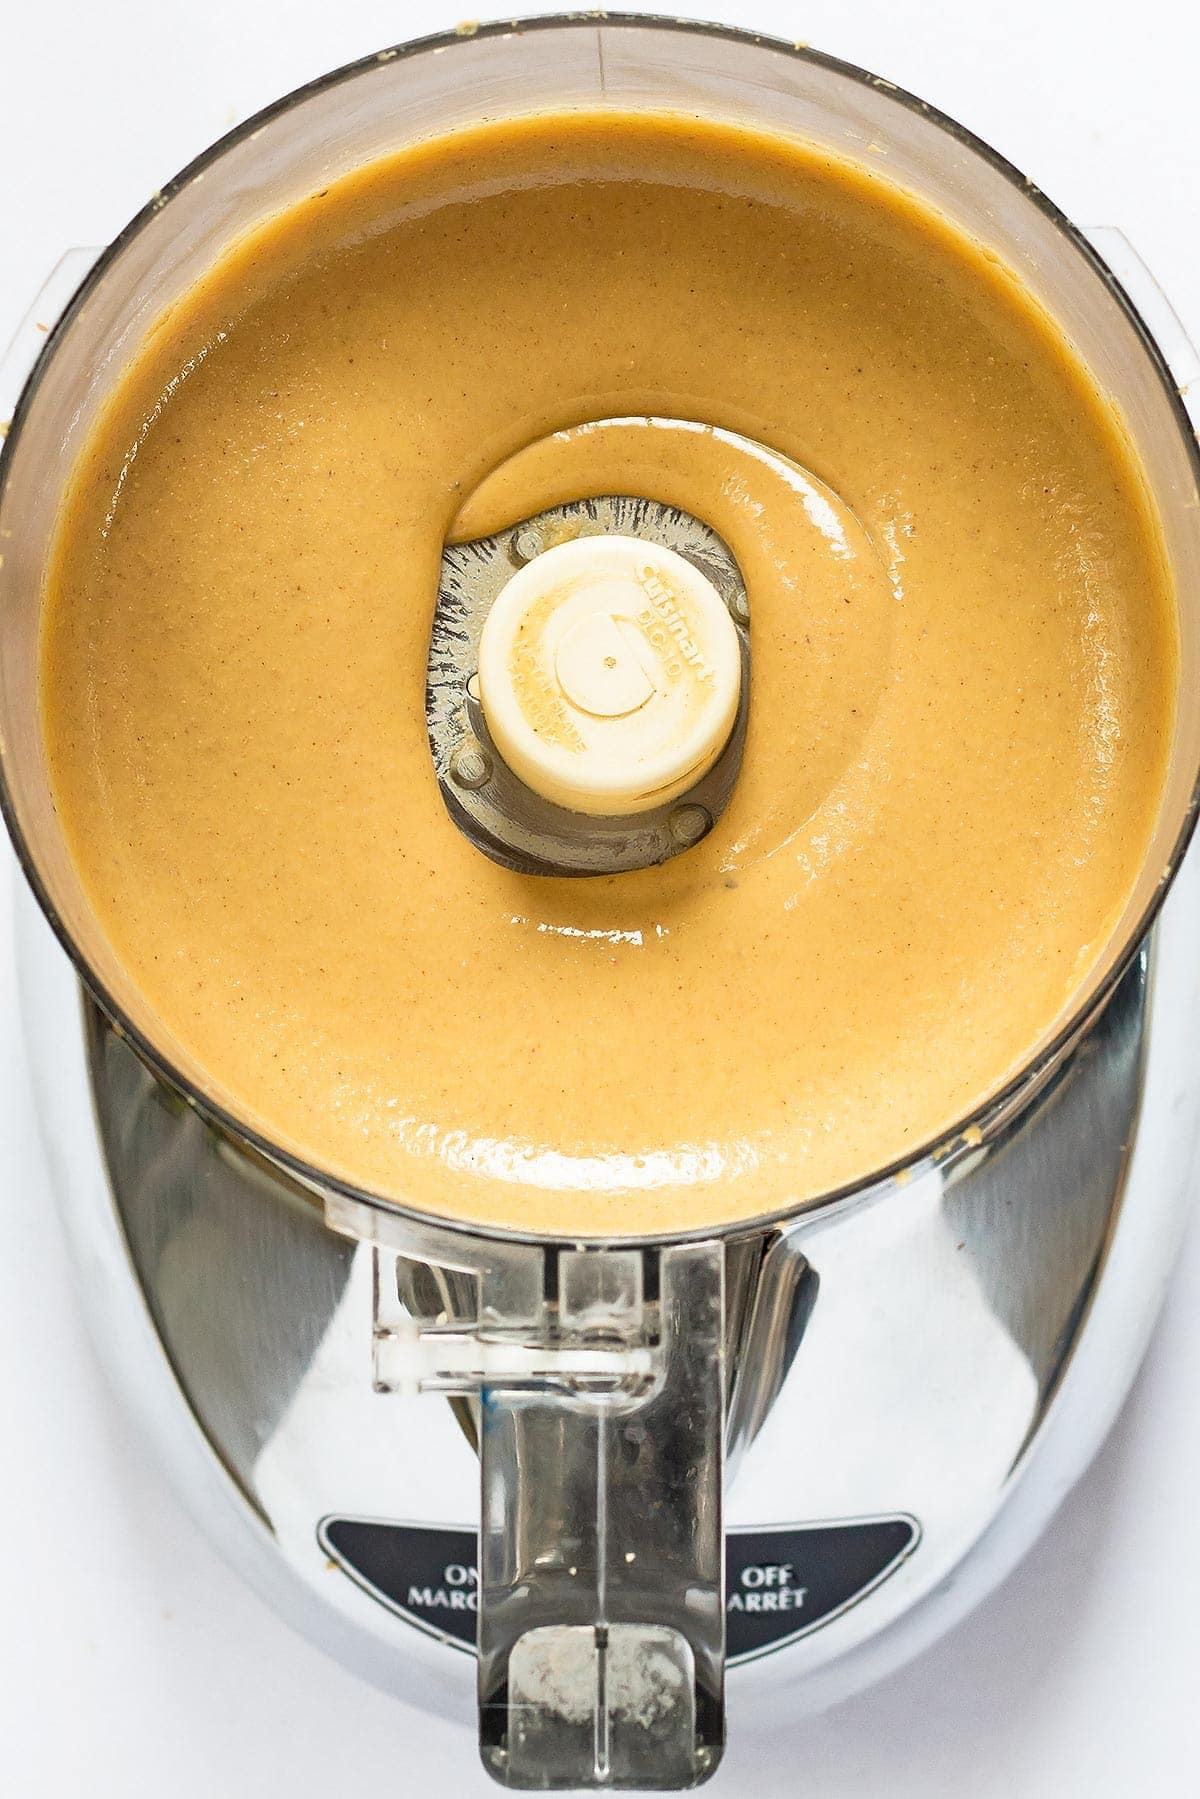 Finished homemade peanut butter in food processor bowl